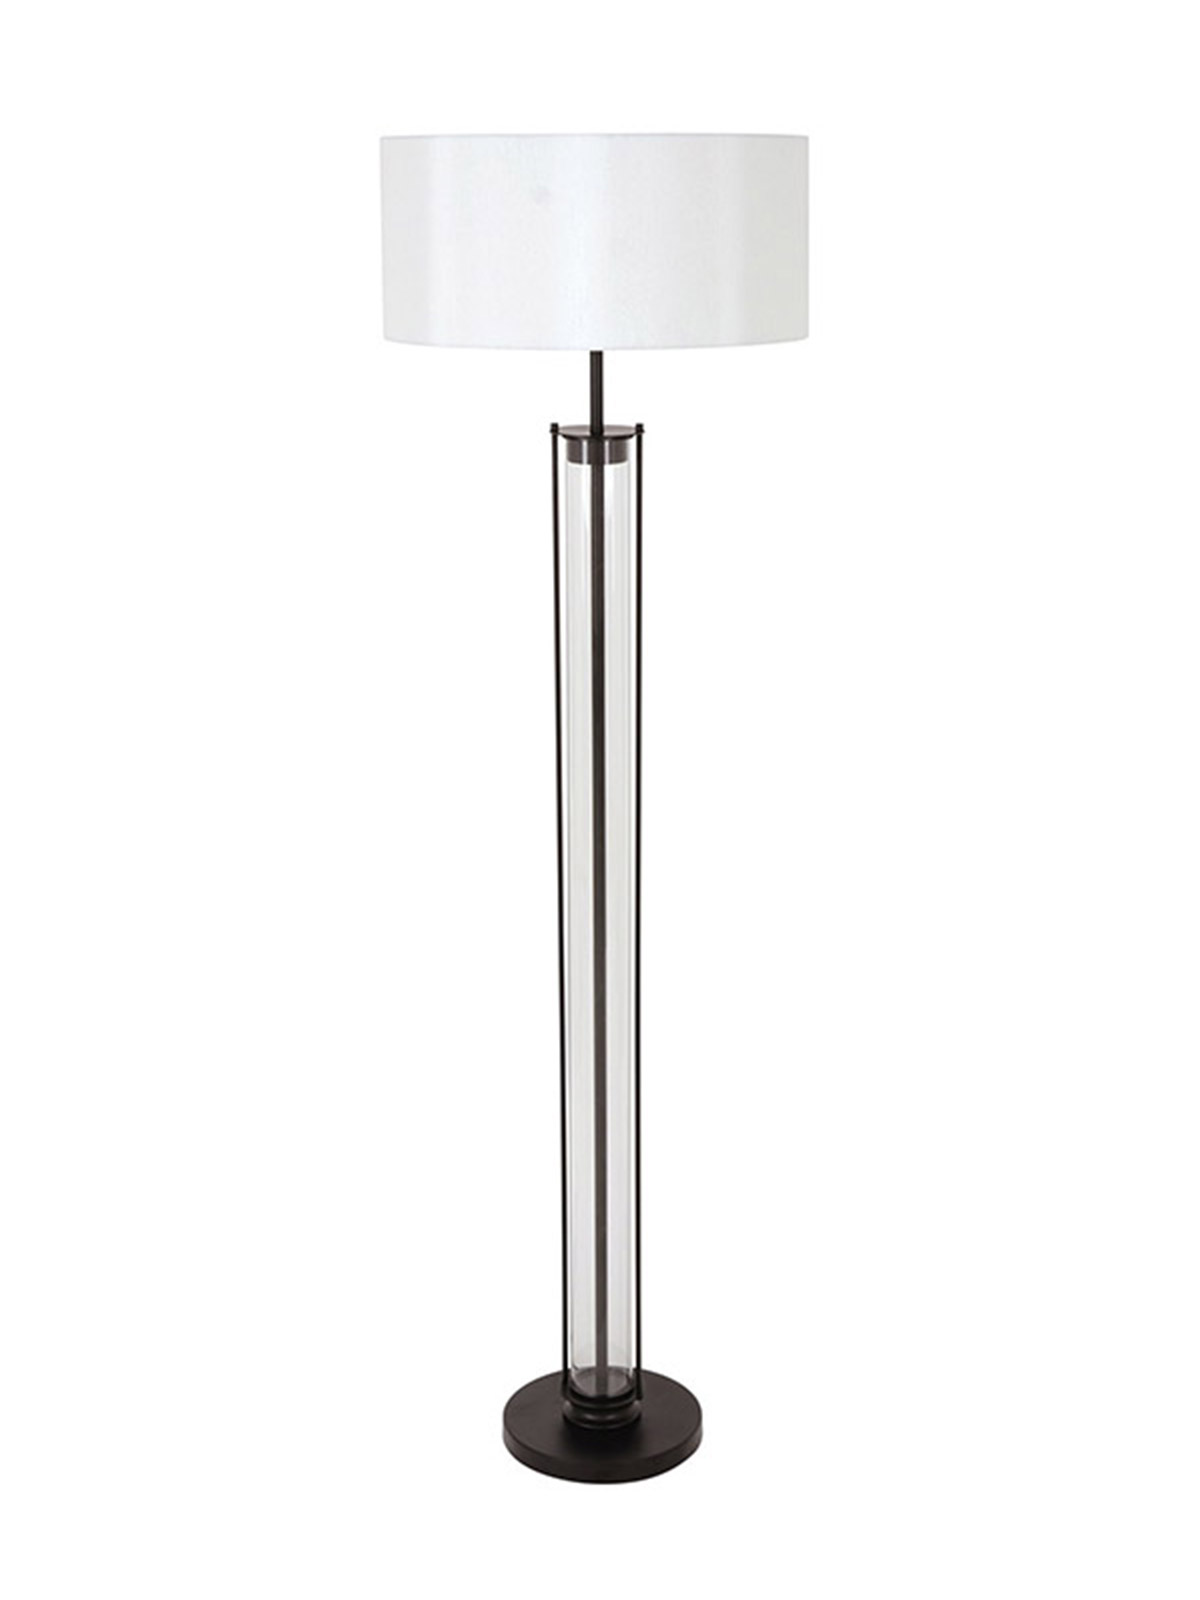 Timing Cherish whiteblack wicker floor lamp manufacturers for hotel-2